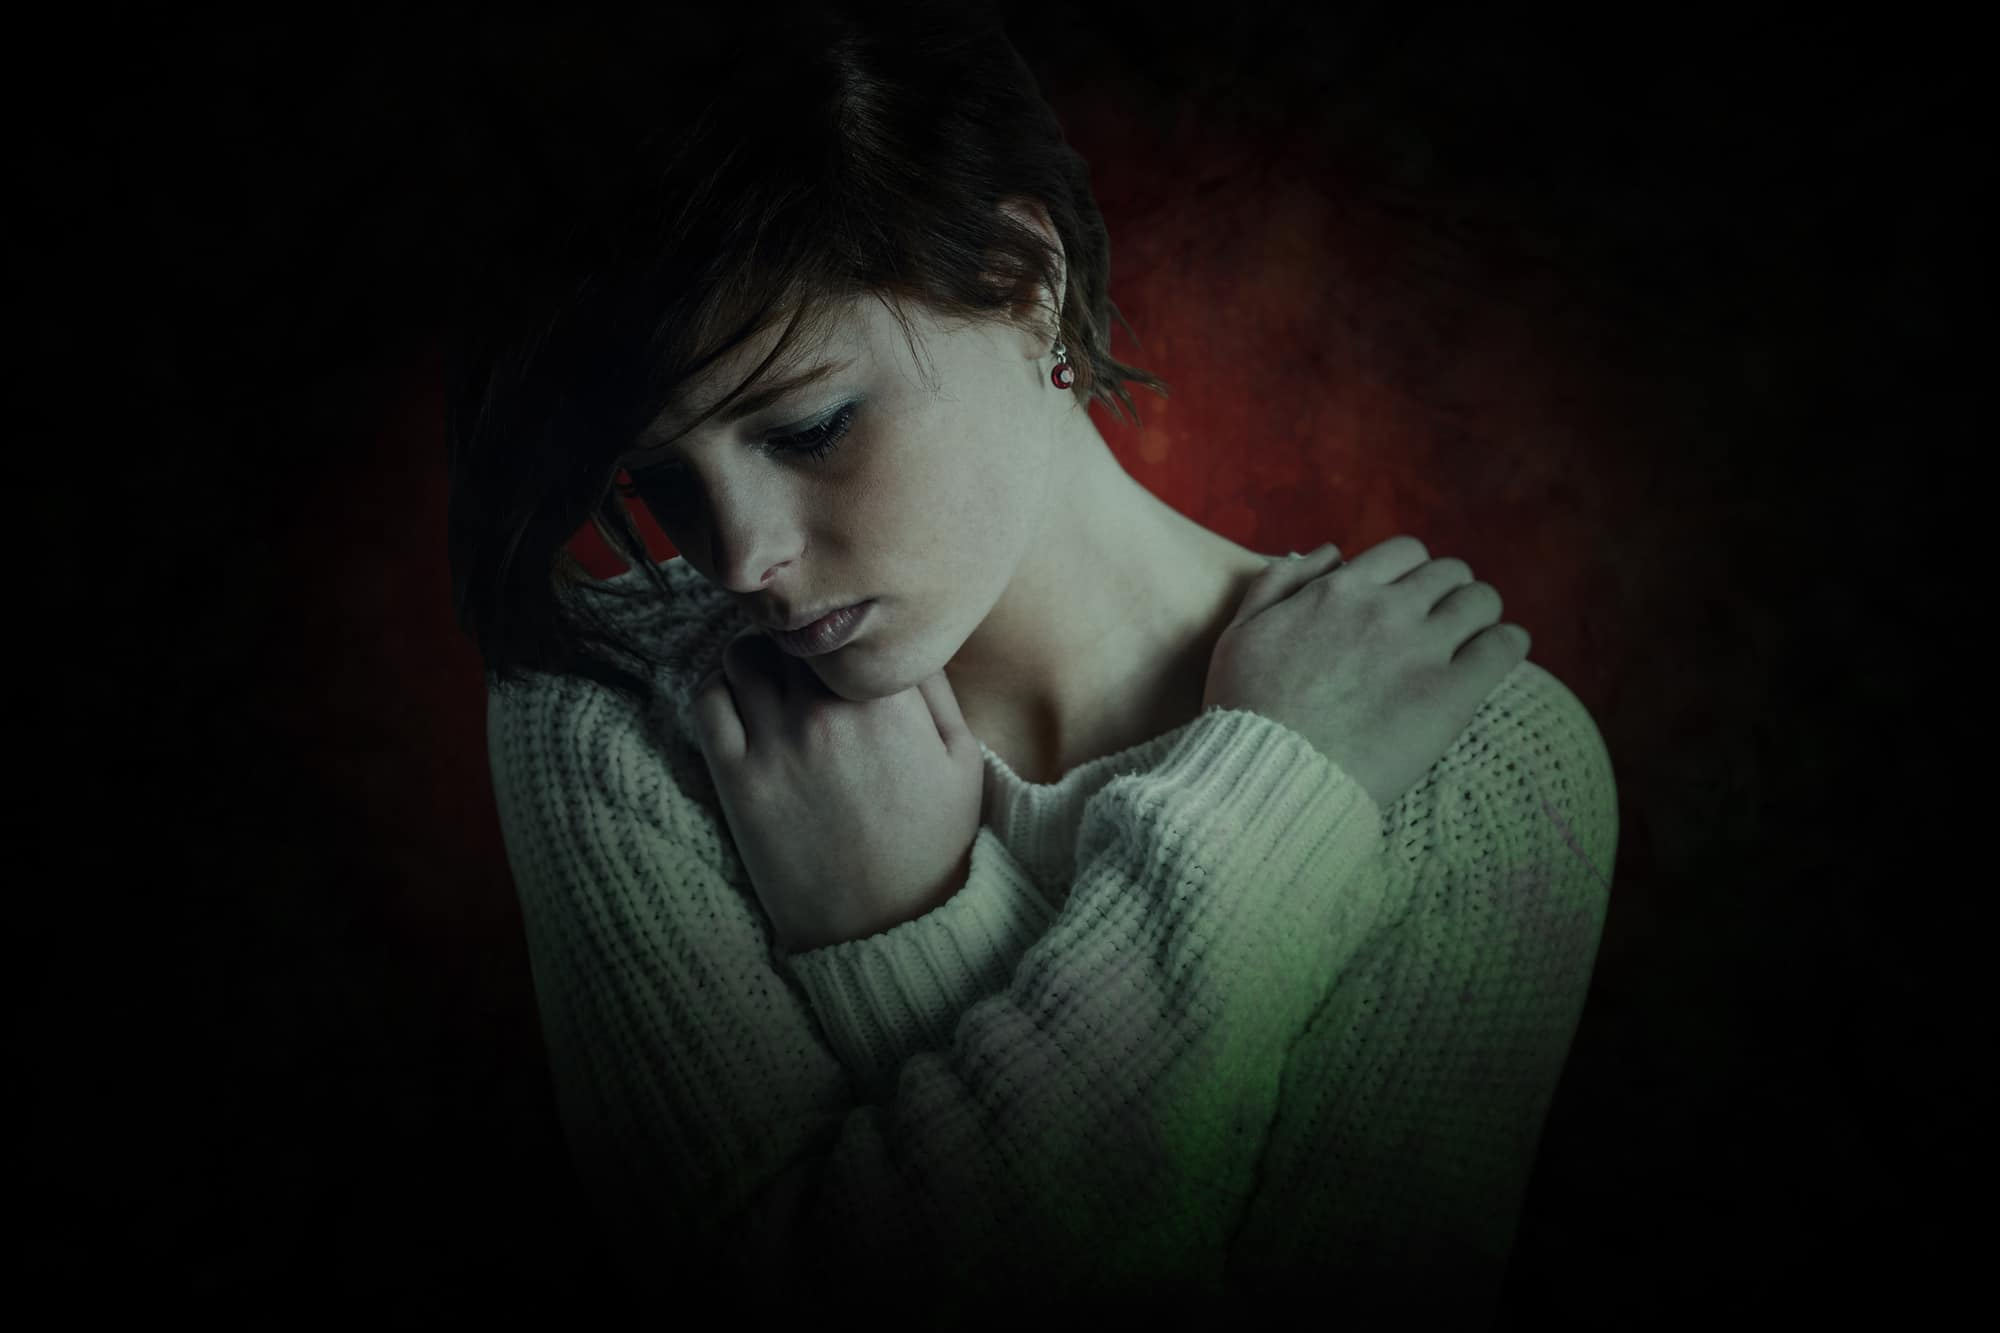 Telltale Signs You've Hit Rock Bottom Due to Addiction